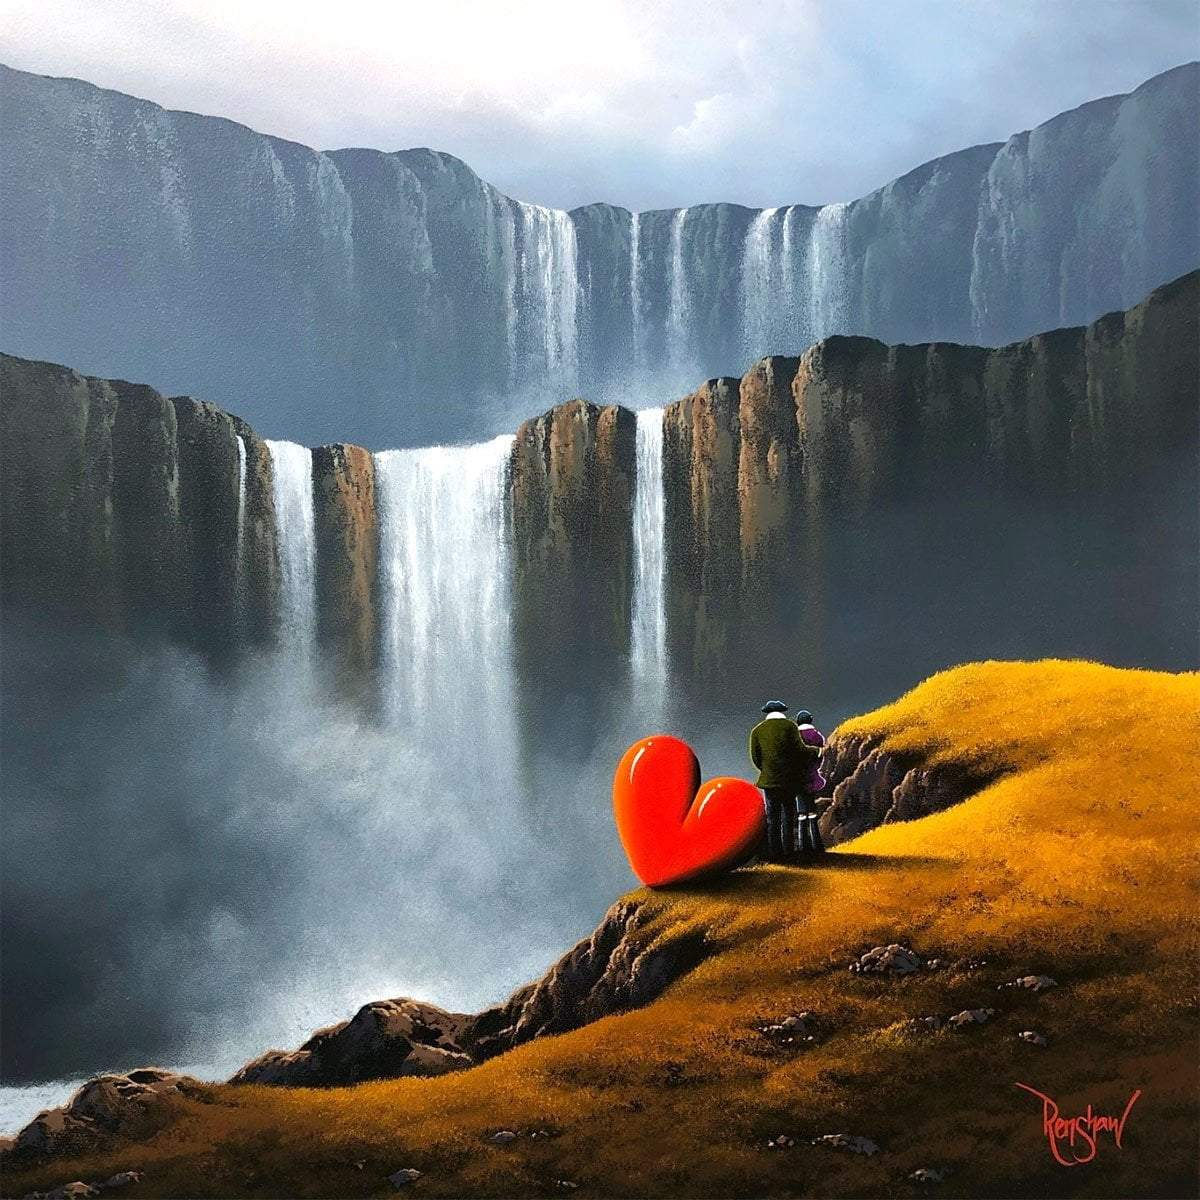 Chasing Waterfalls - Original David Renshaw Framed